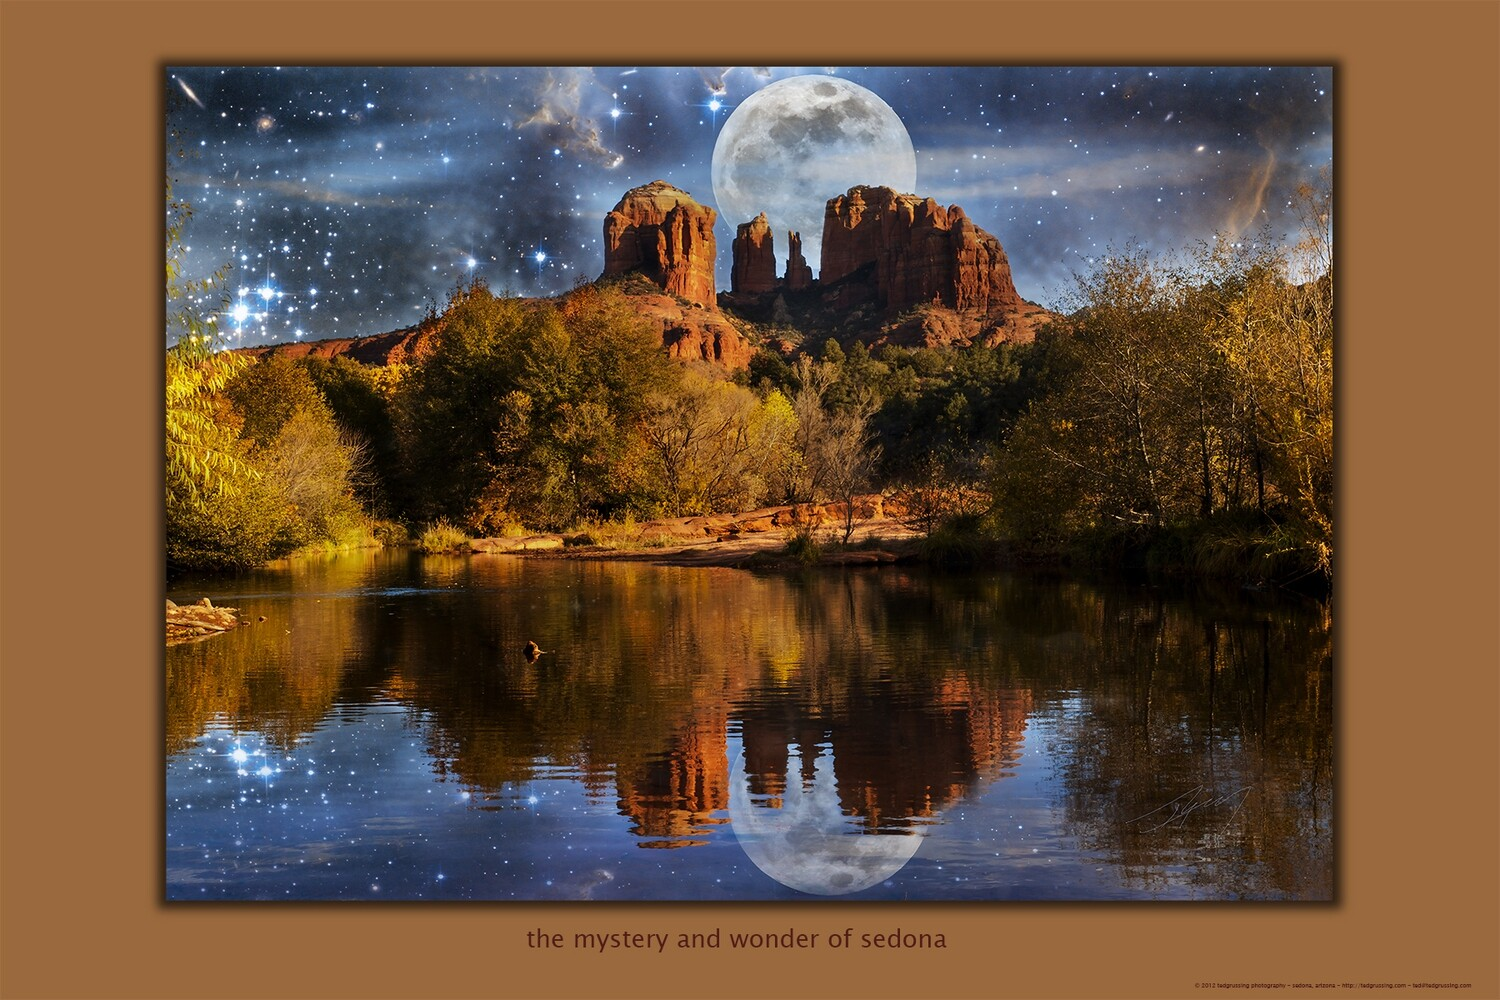 "Mystery and Wonder of Sedona 30"" x 20"" Poster"